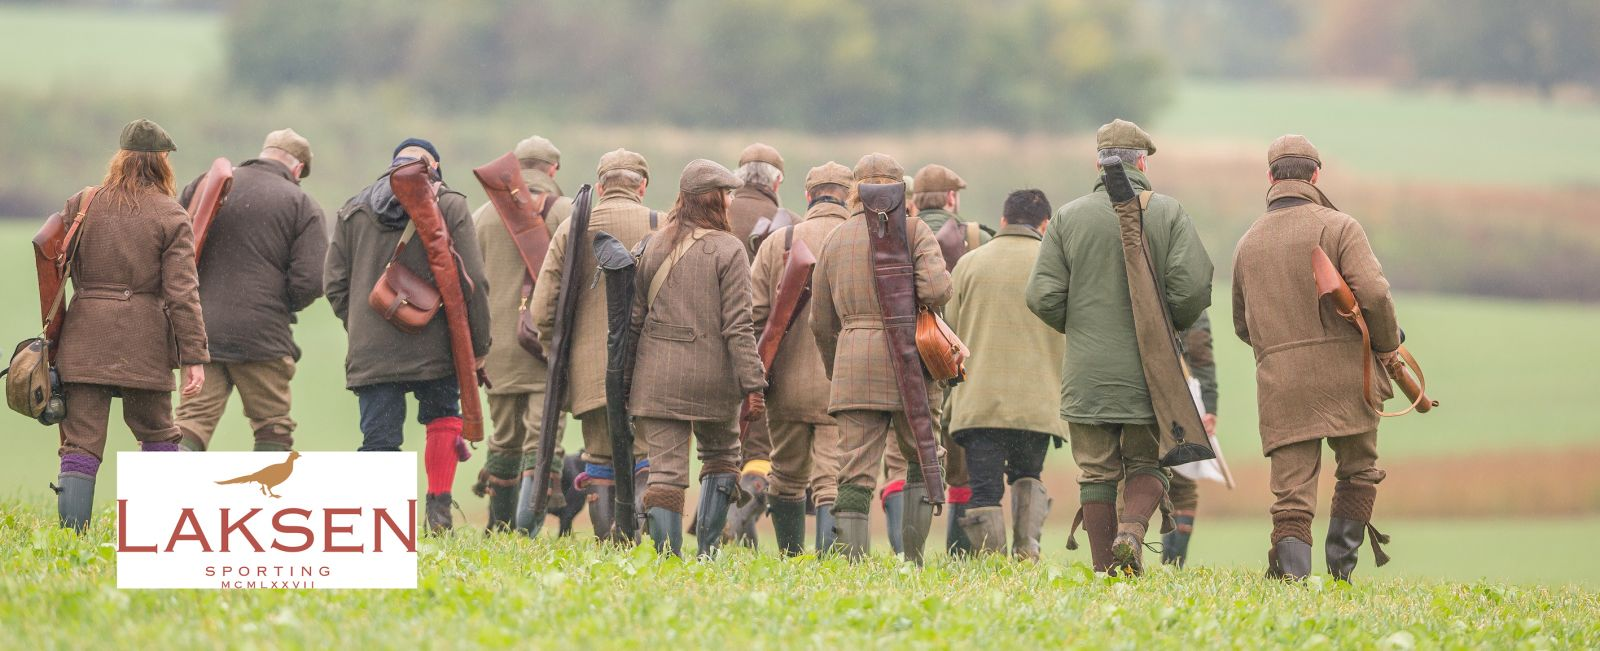 Laksen sporting hunting and outdoor clothes tweedchasse